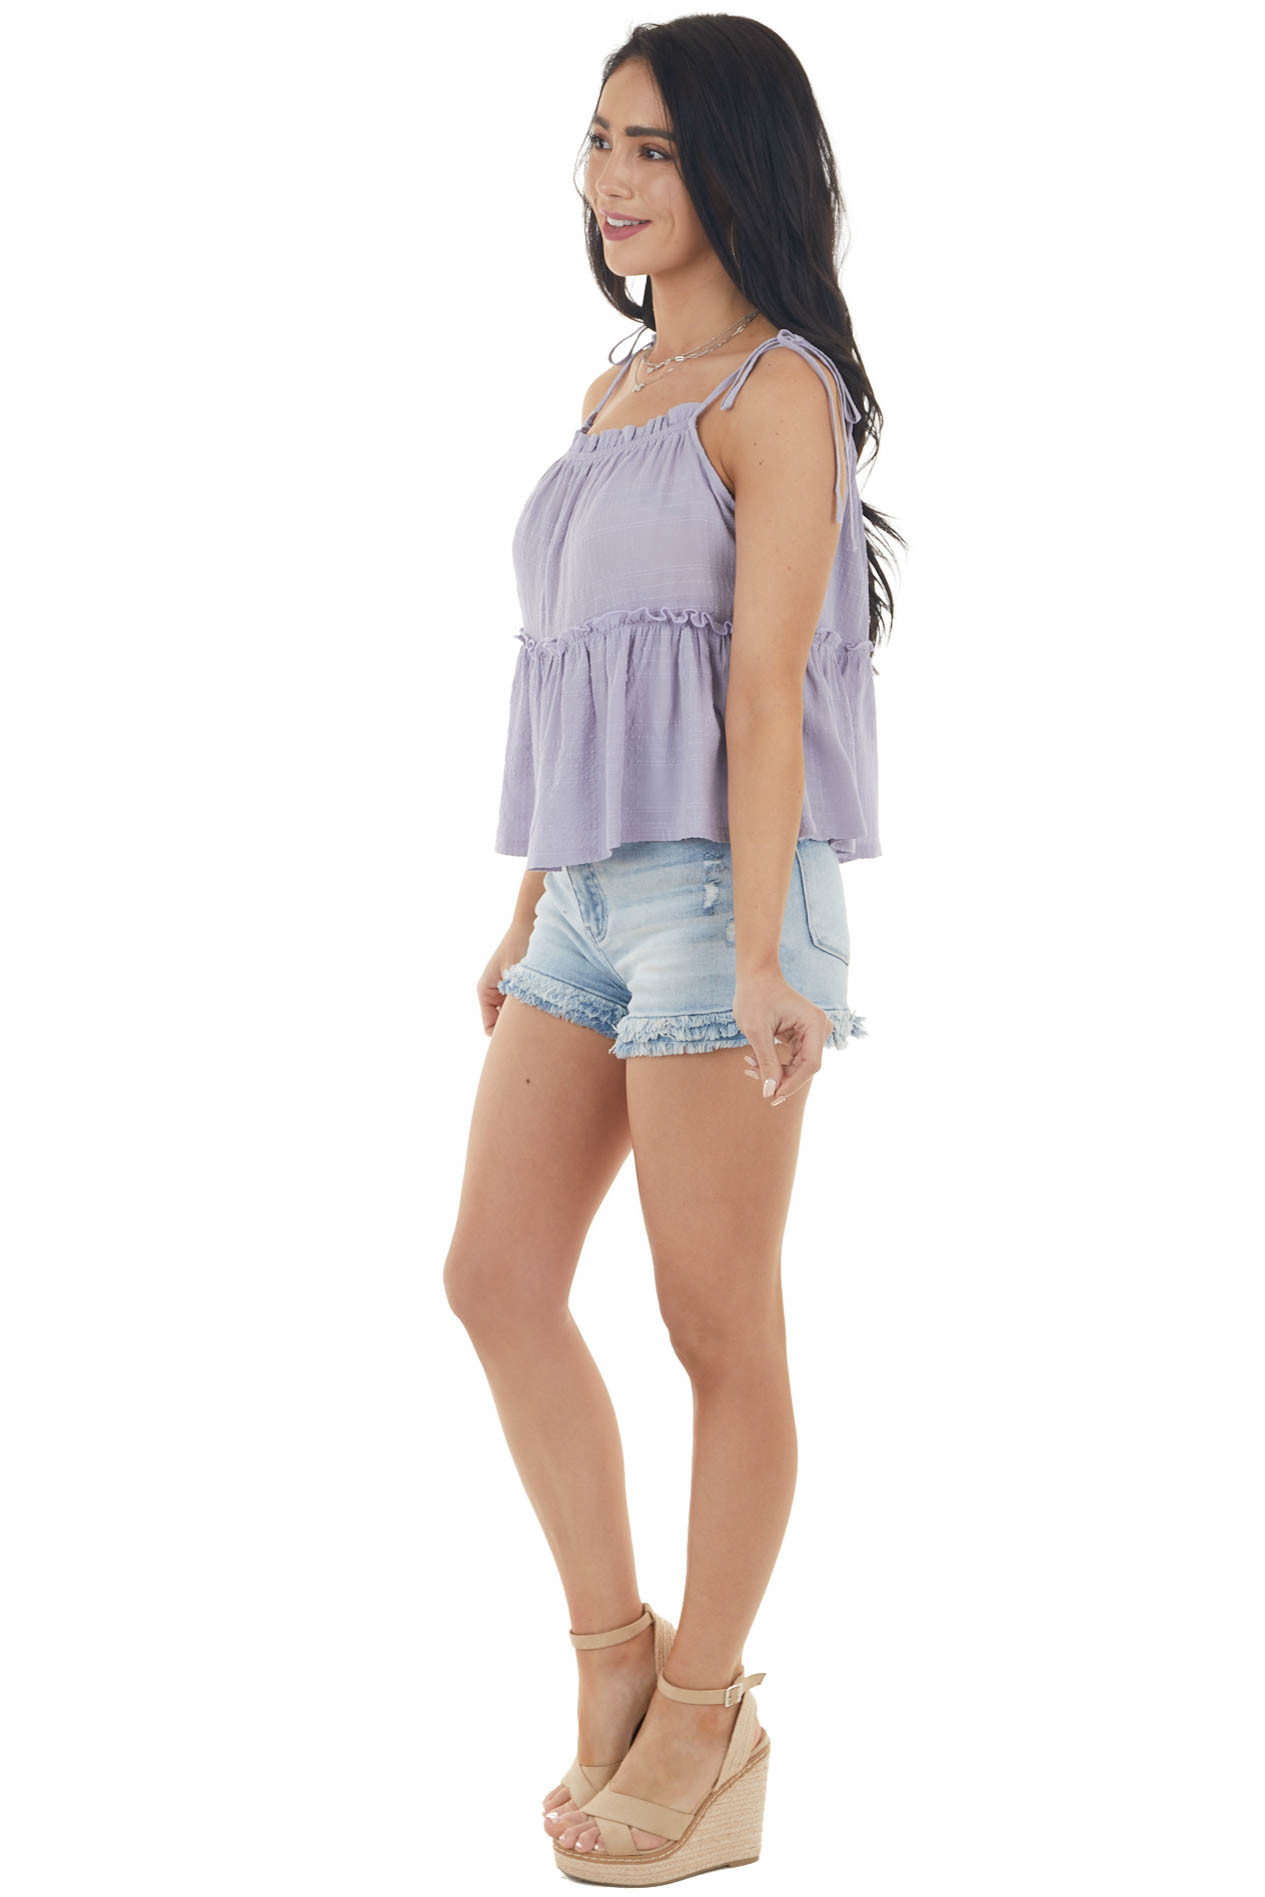 Light Lavender Ruffled Textured Blouse with Tie Straps